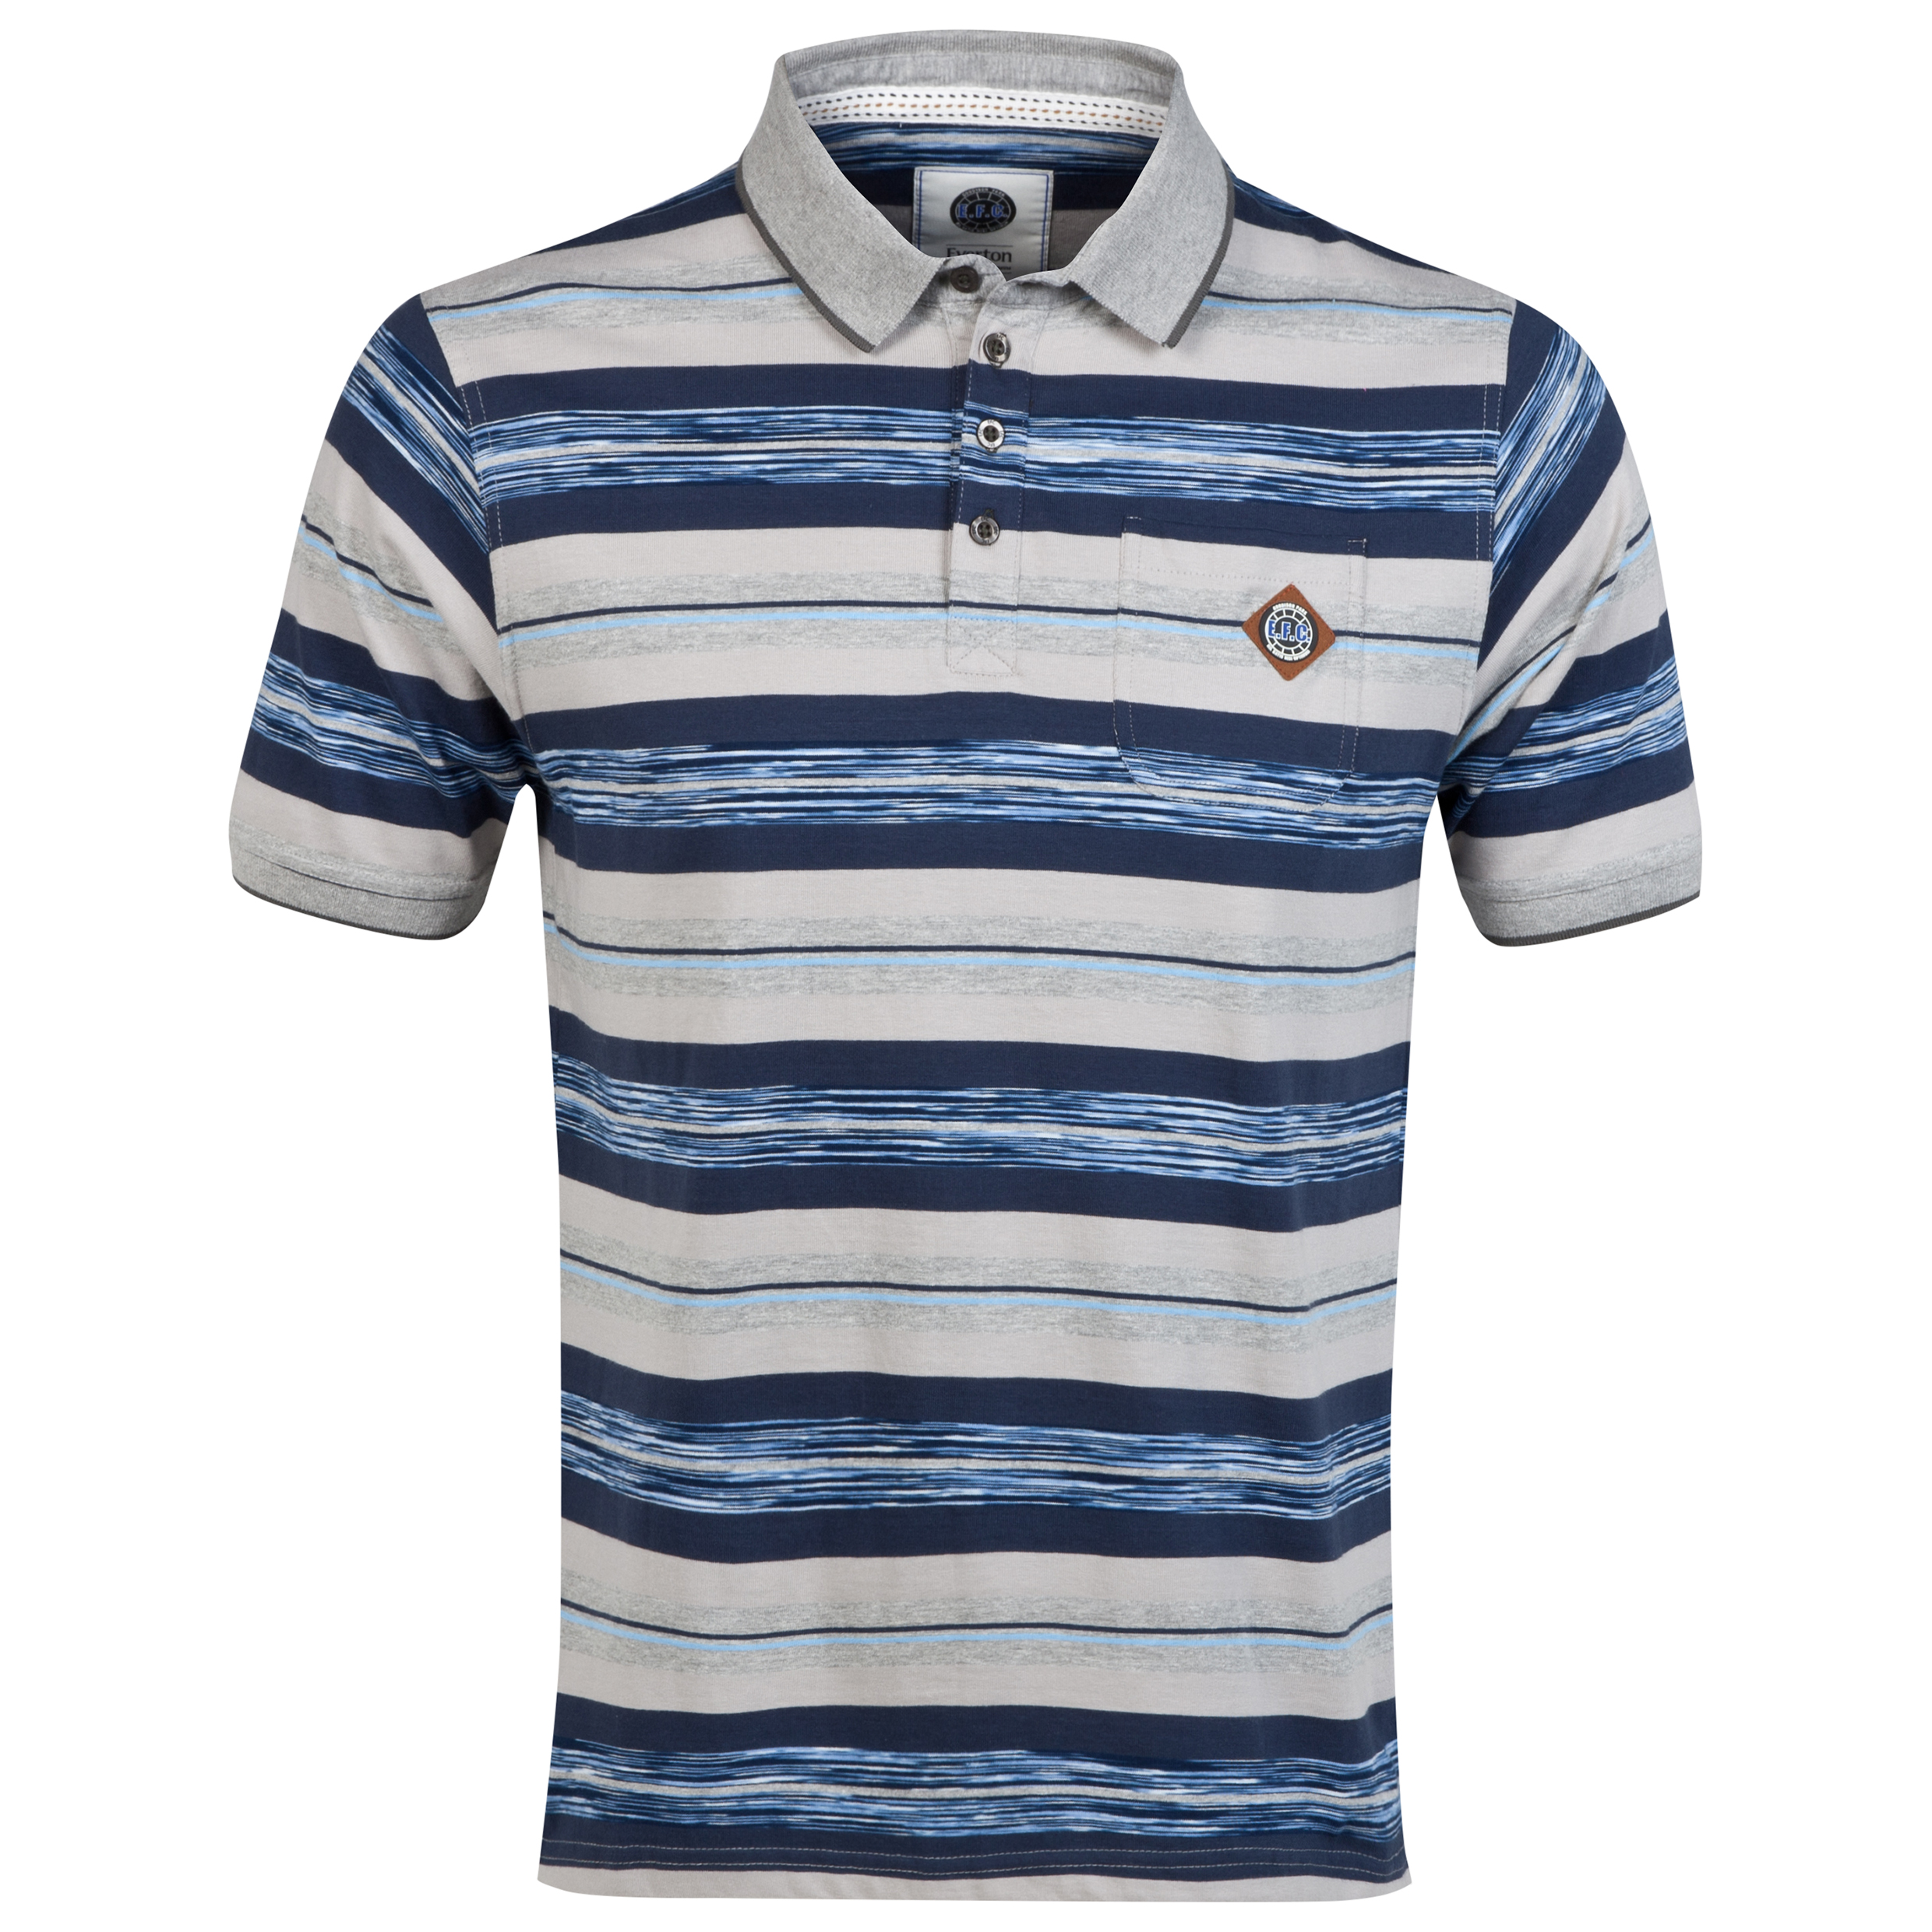 Everton Polo Shirt  Grey/Blue - Mens